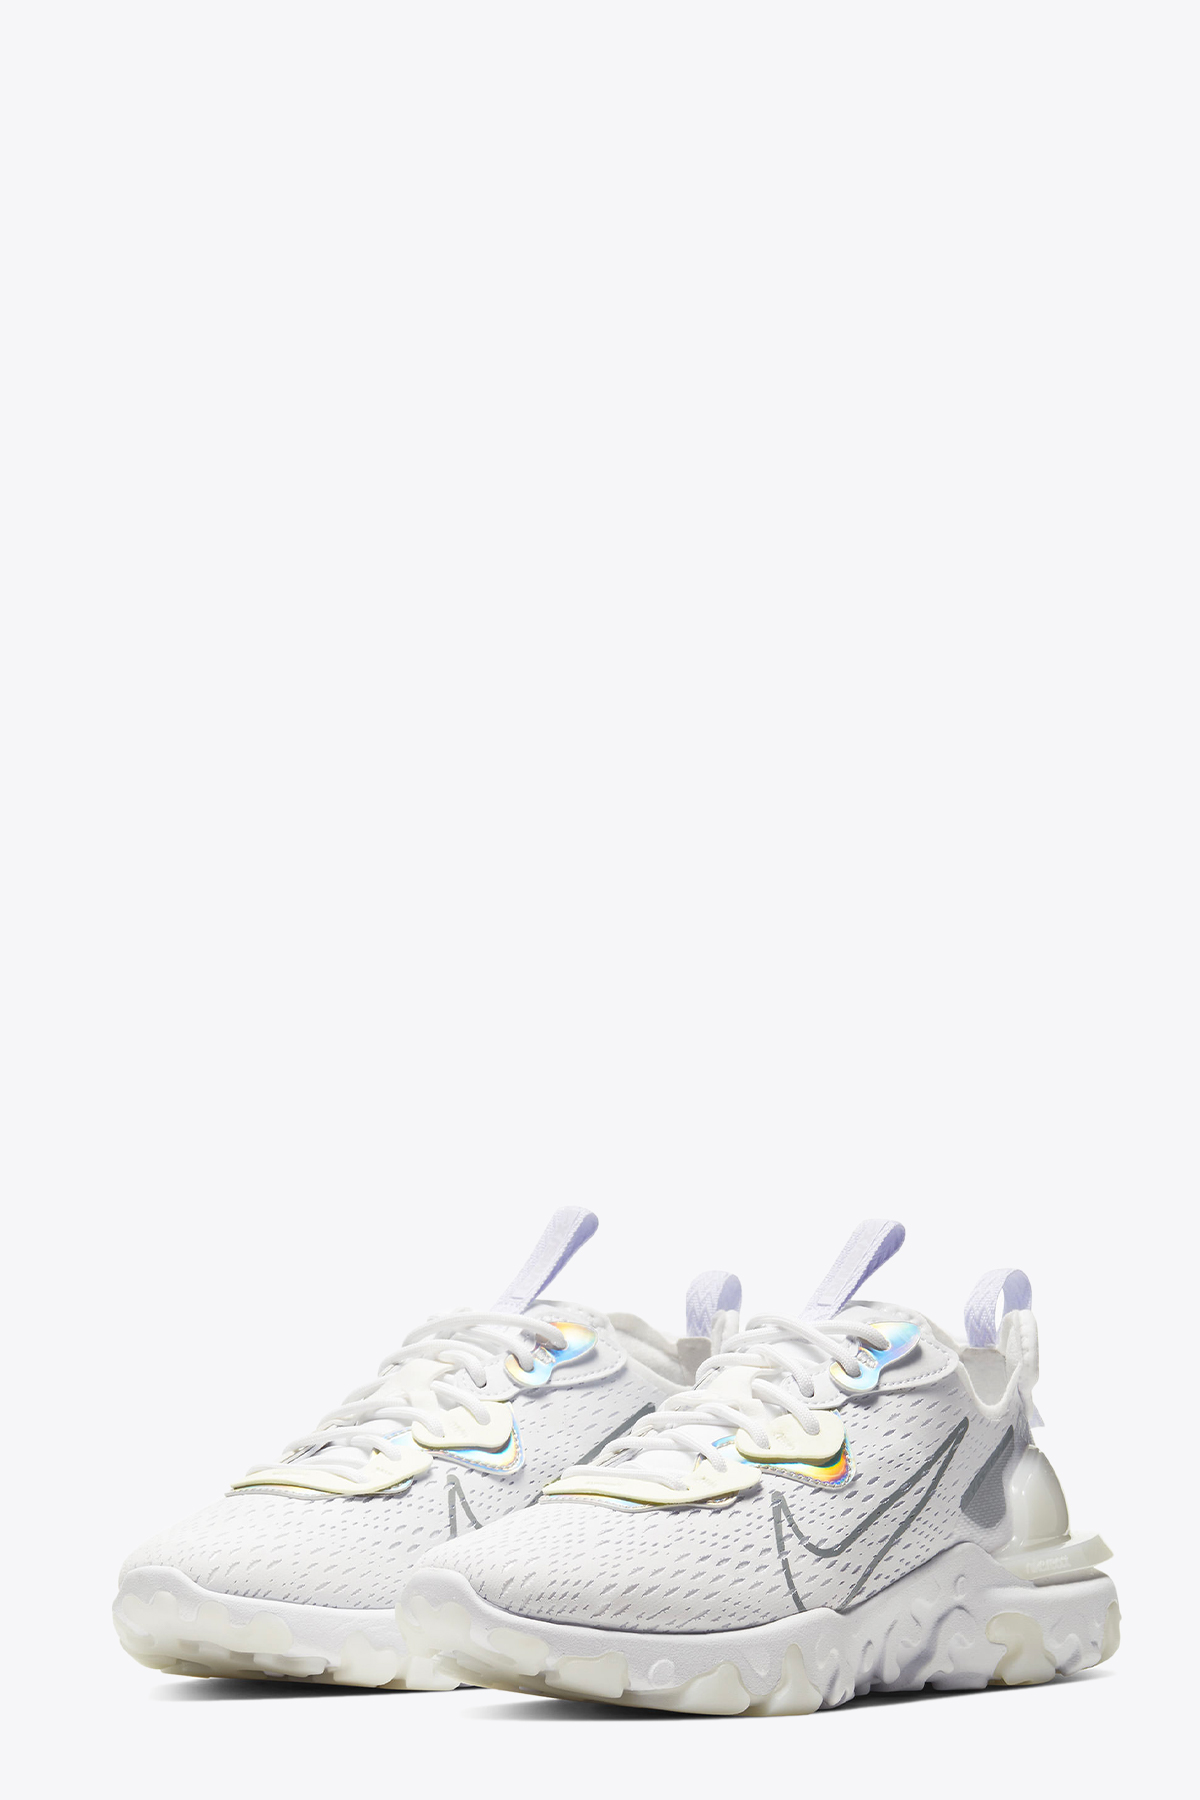 NSW REACT VISION ESSENTIAL NIKE | 10000039 | CW0730-100 NSW REACT VISION ESSENTIALWHITE